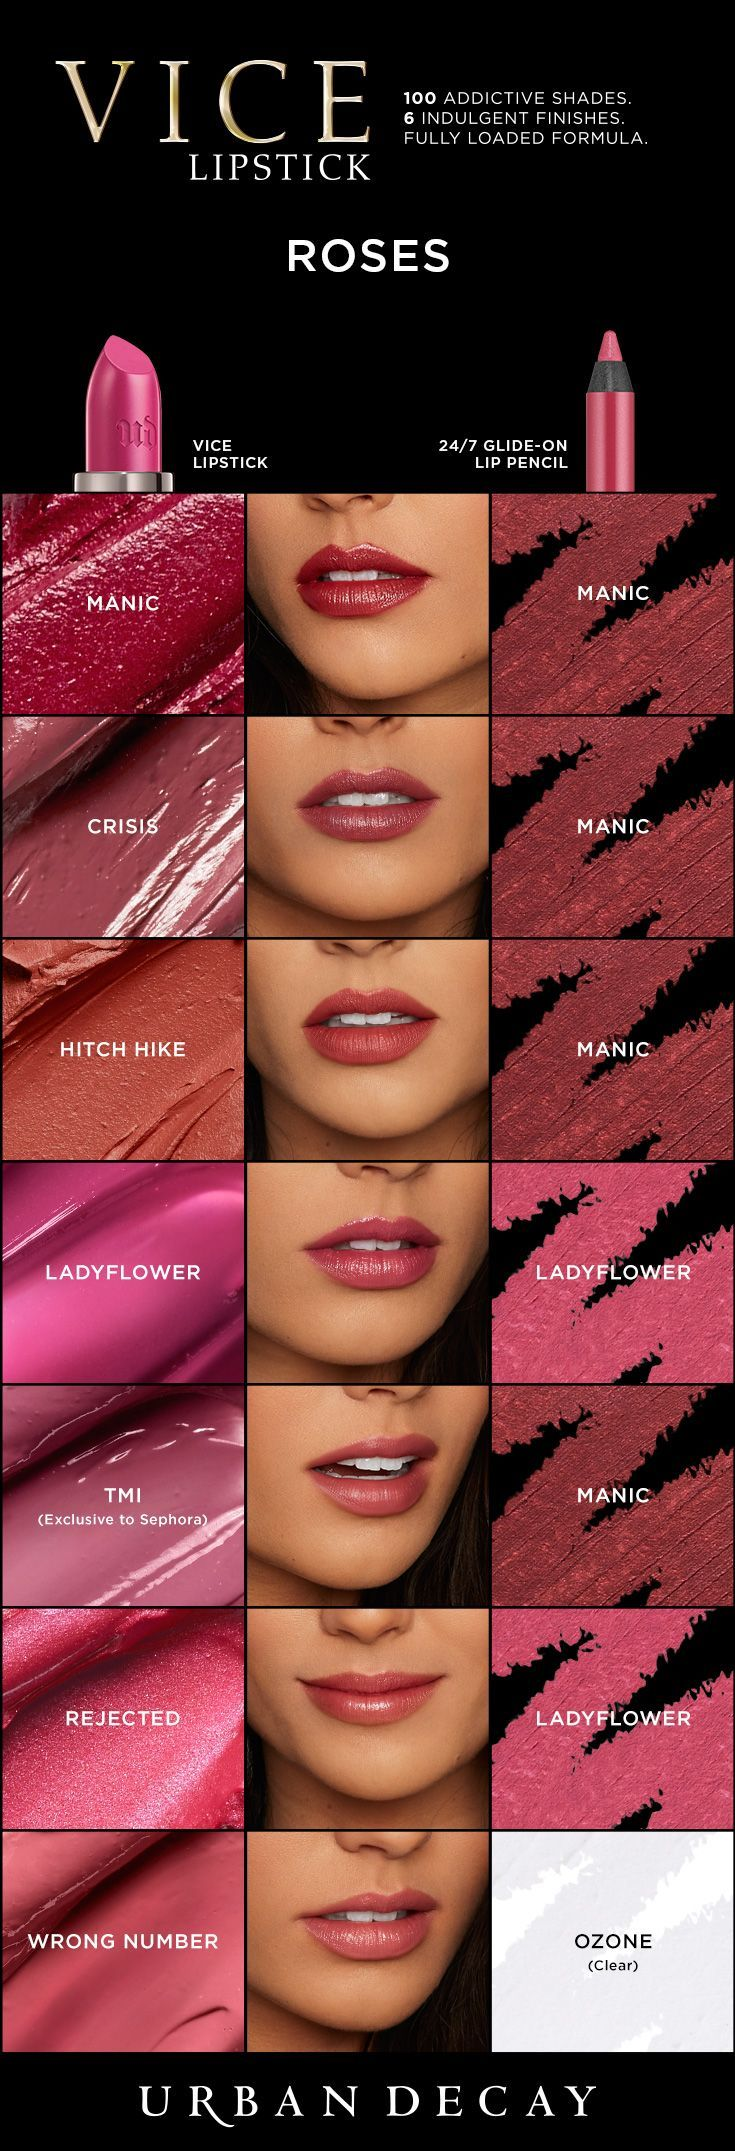 Rose overload! Grab your favorite shade of Vice Lipstick now at Urban Decay. #LipstickIsMyVice